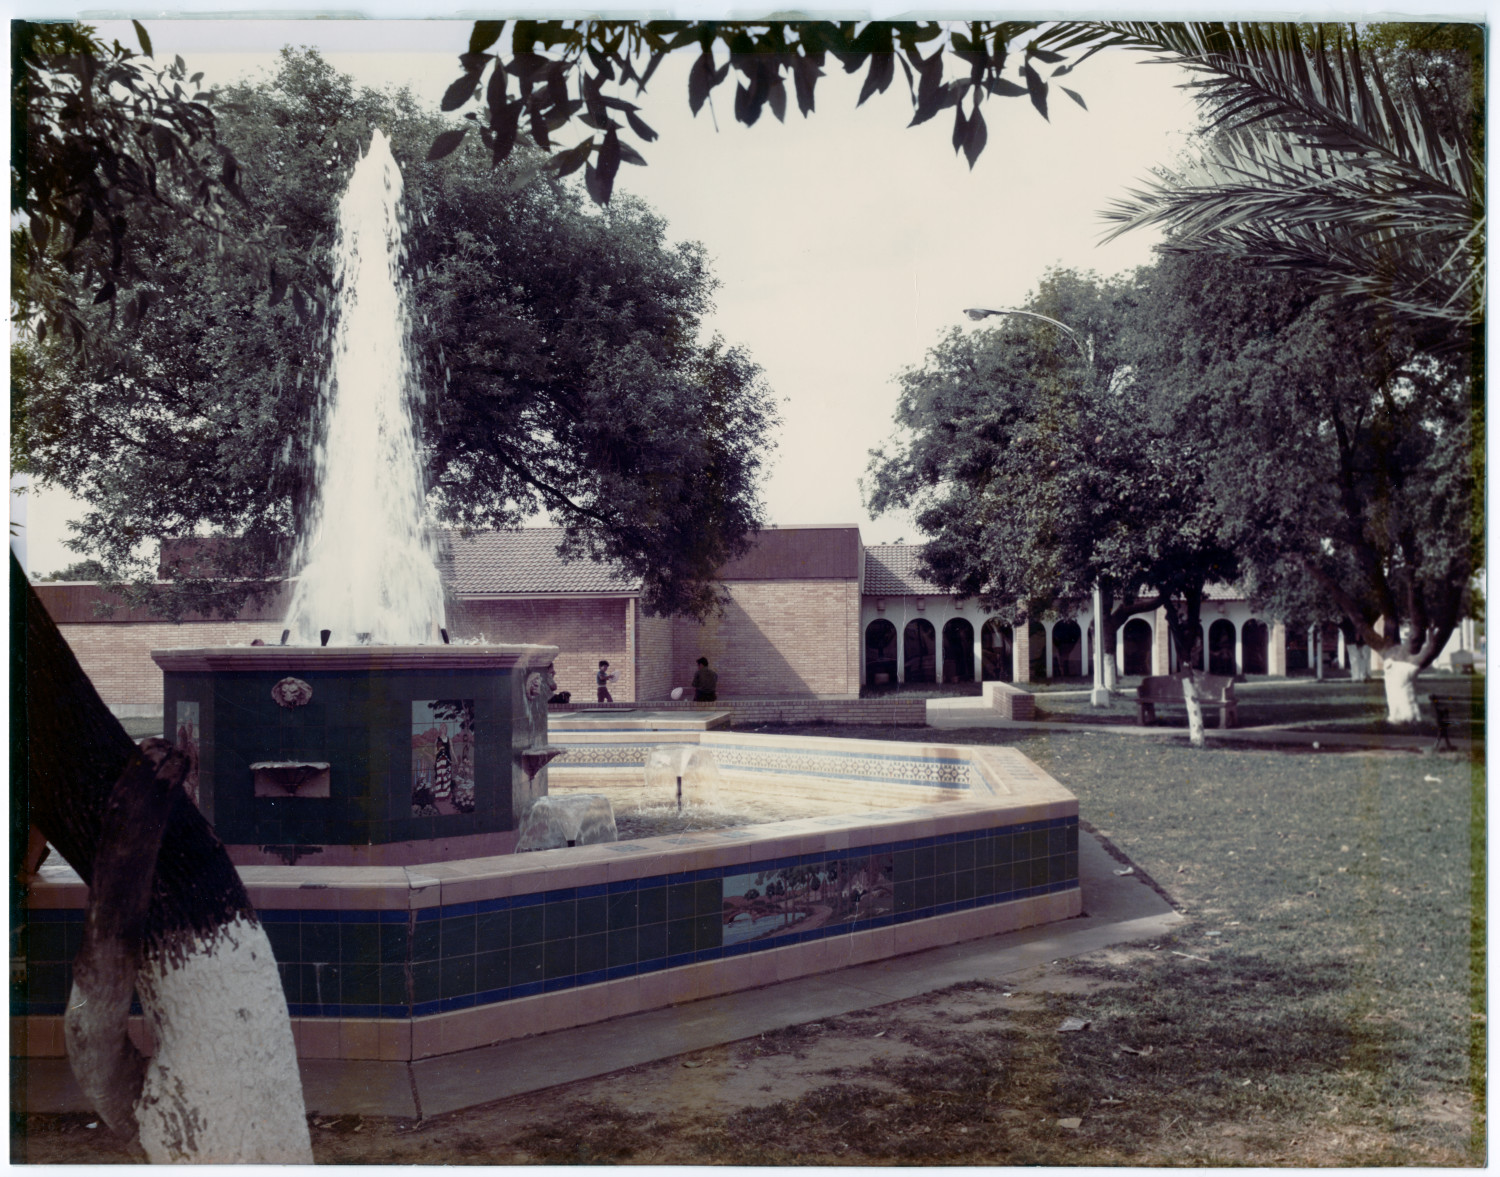 [Bruni Plaza Fountain]                                                                                                      [Sequence #]: 1 of 1